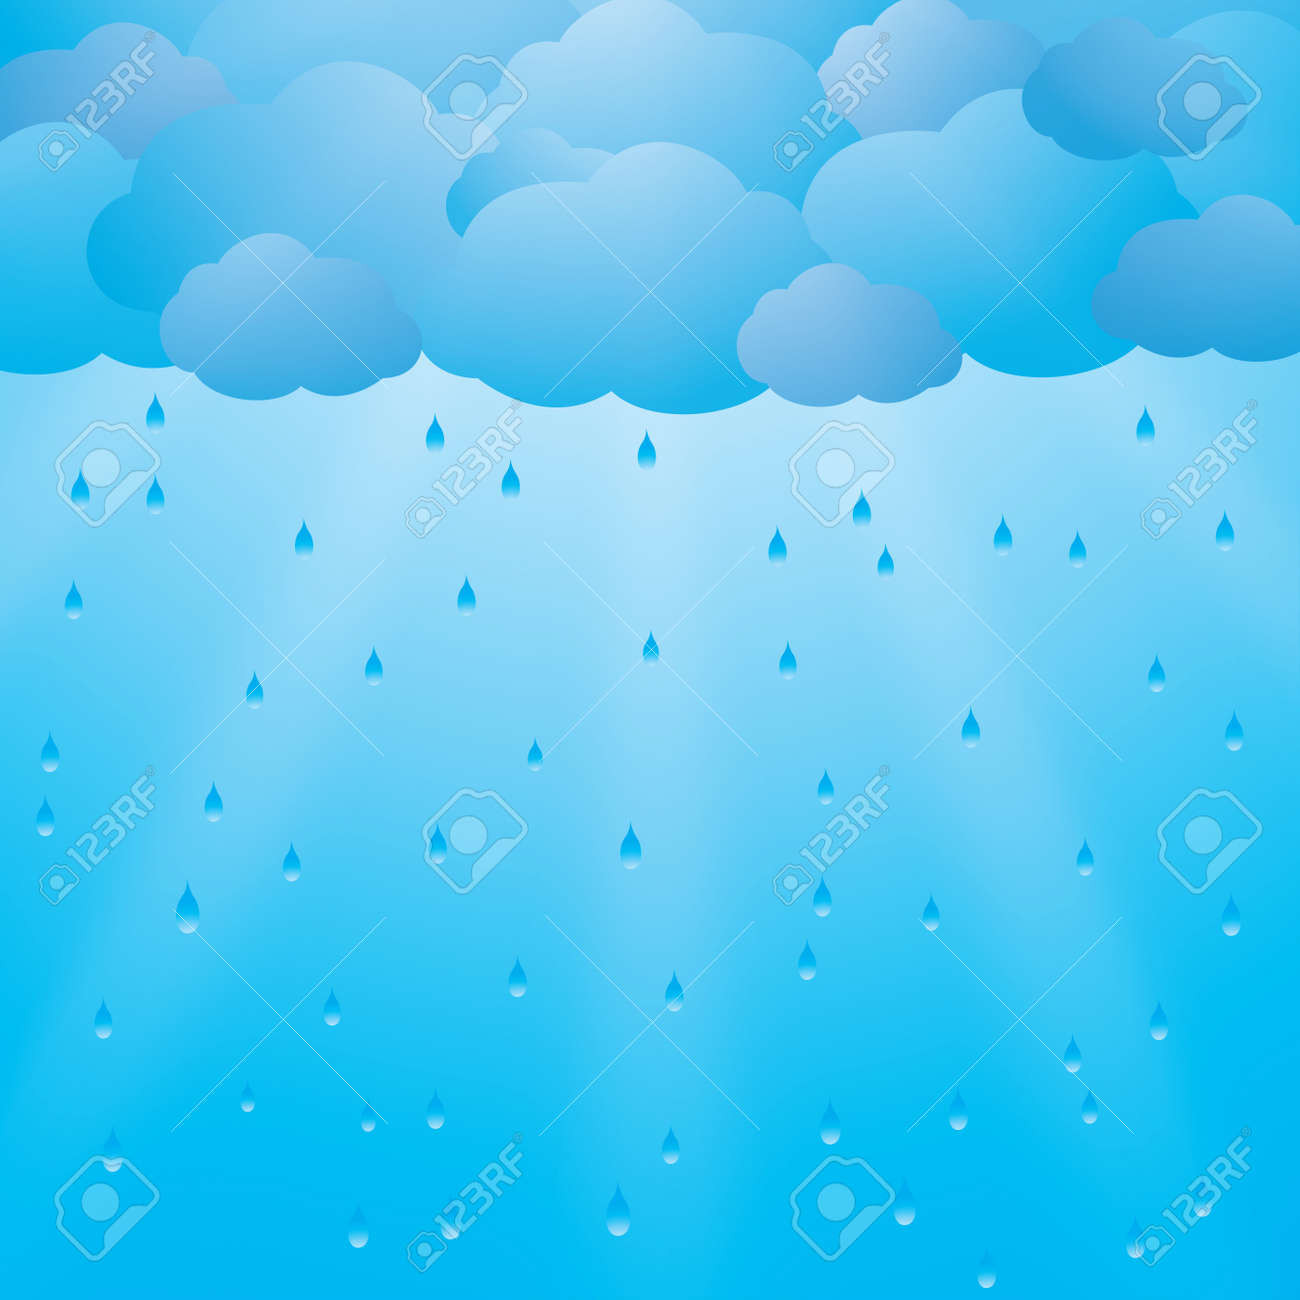 Background with clouds, rain and sun rays - 20662827